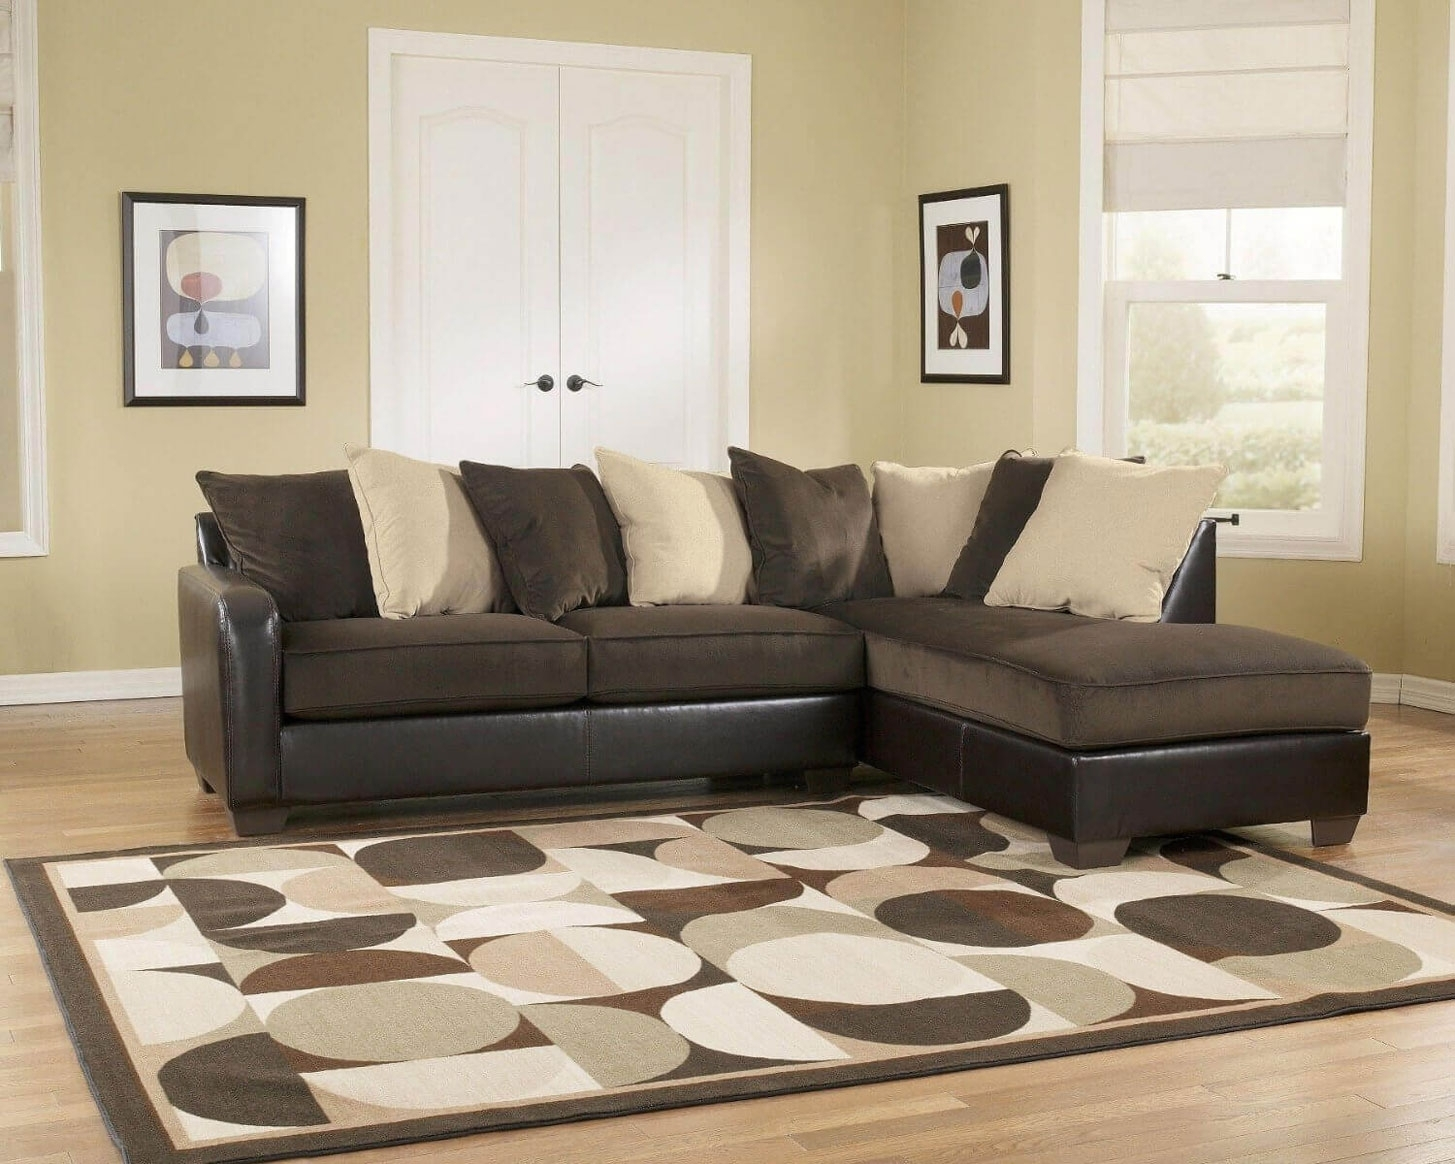 Sectional Sofa Most Recommended Sectional Sofas Under 1000 Buy In Sectional Sofas Under (View 2 of 10)